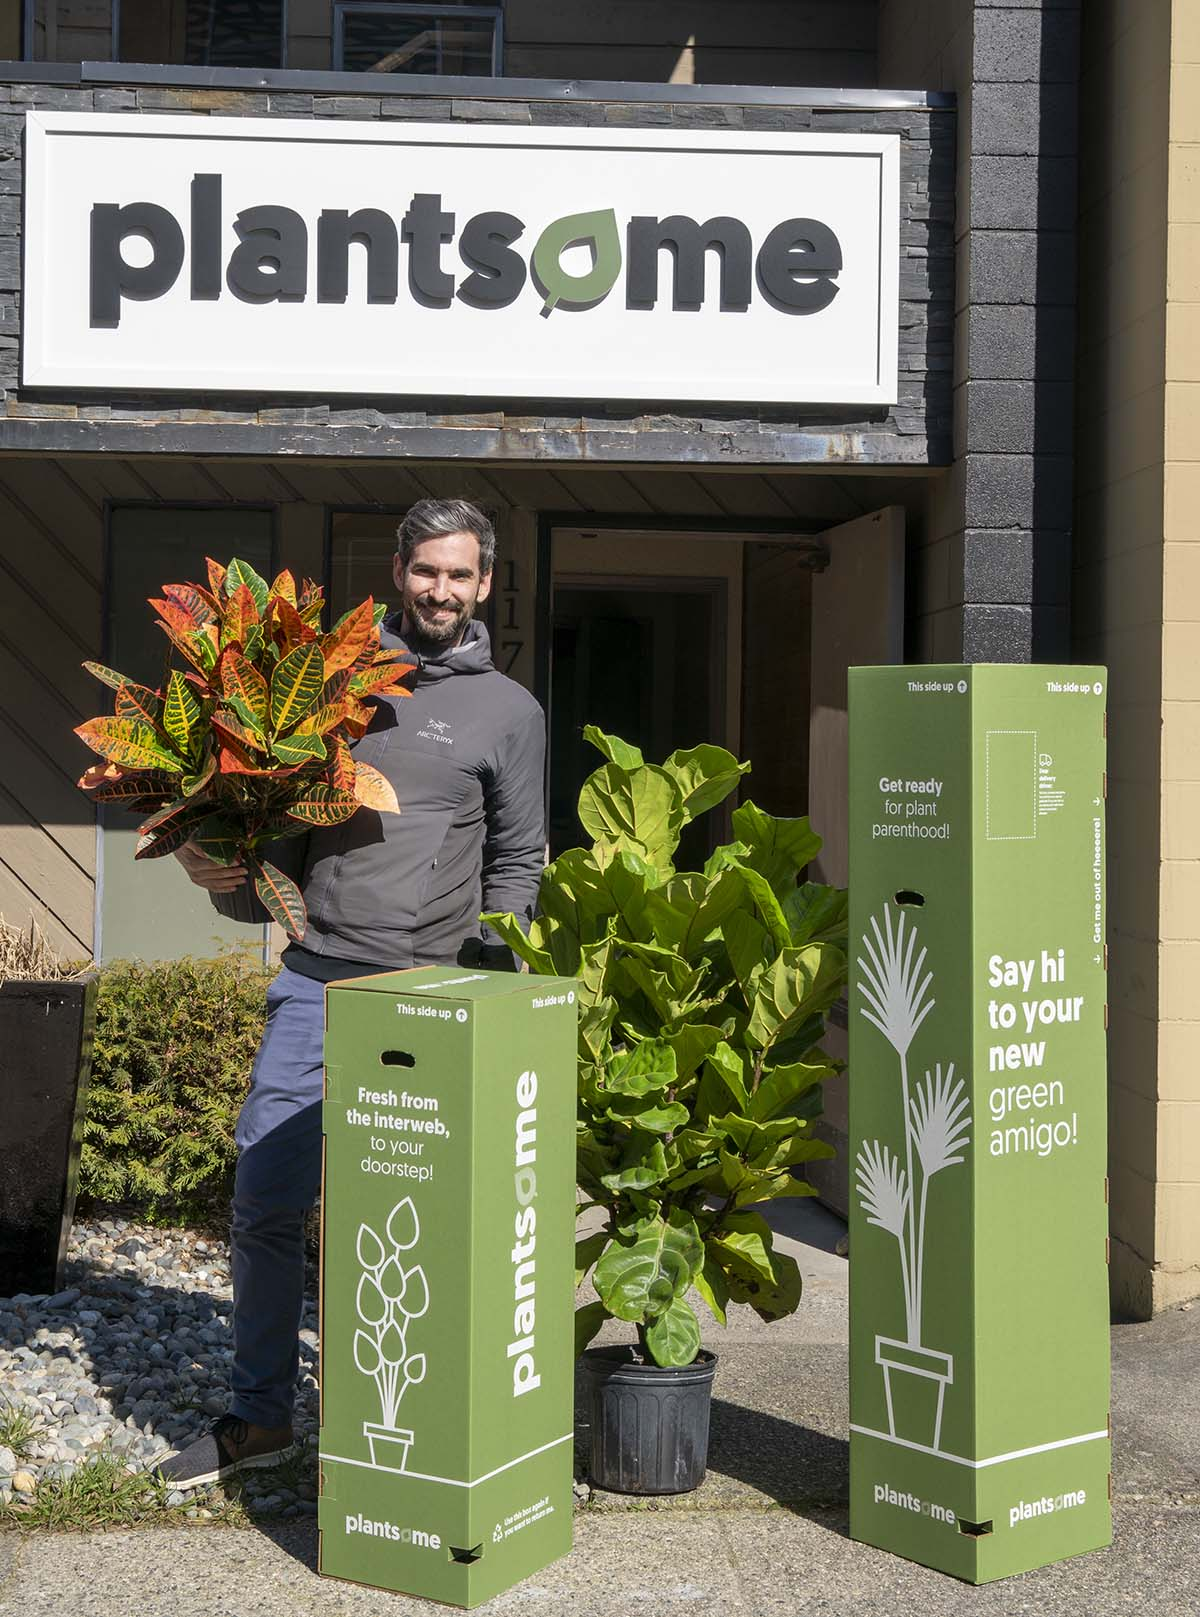 Plantsome.ca has launched!